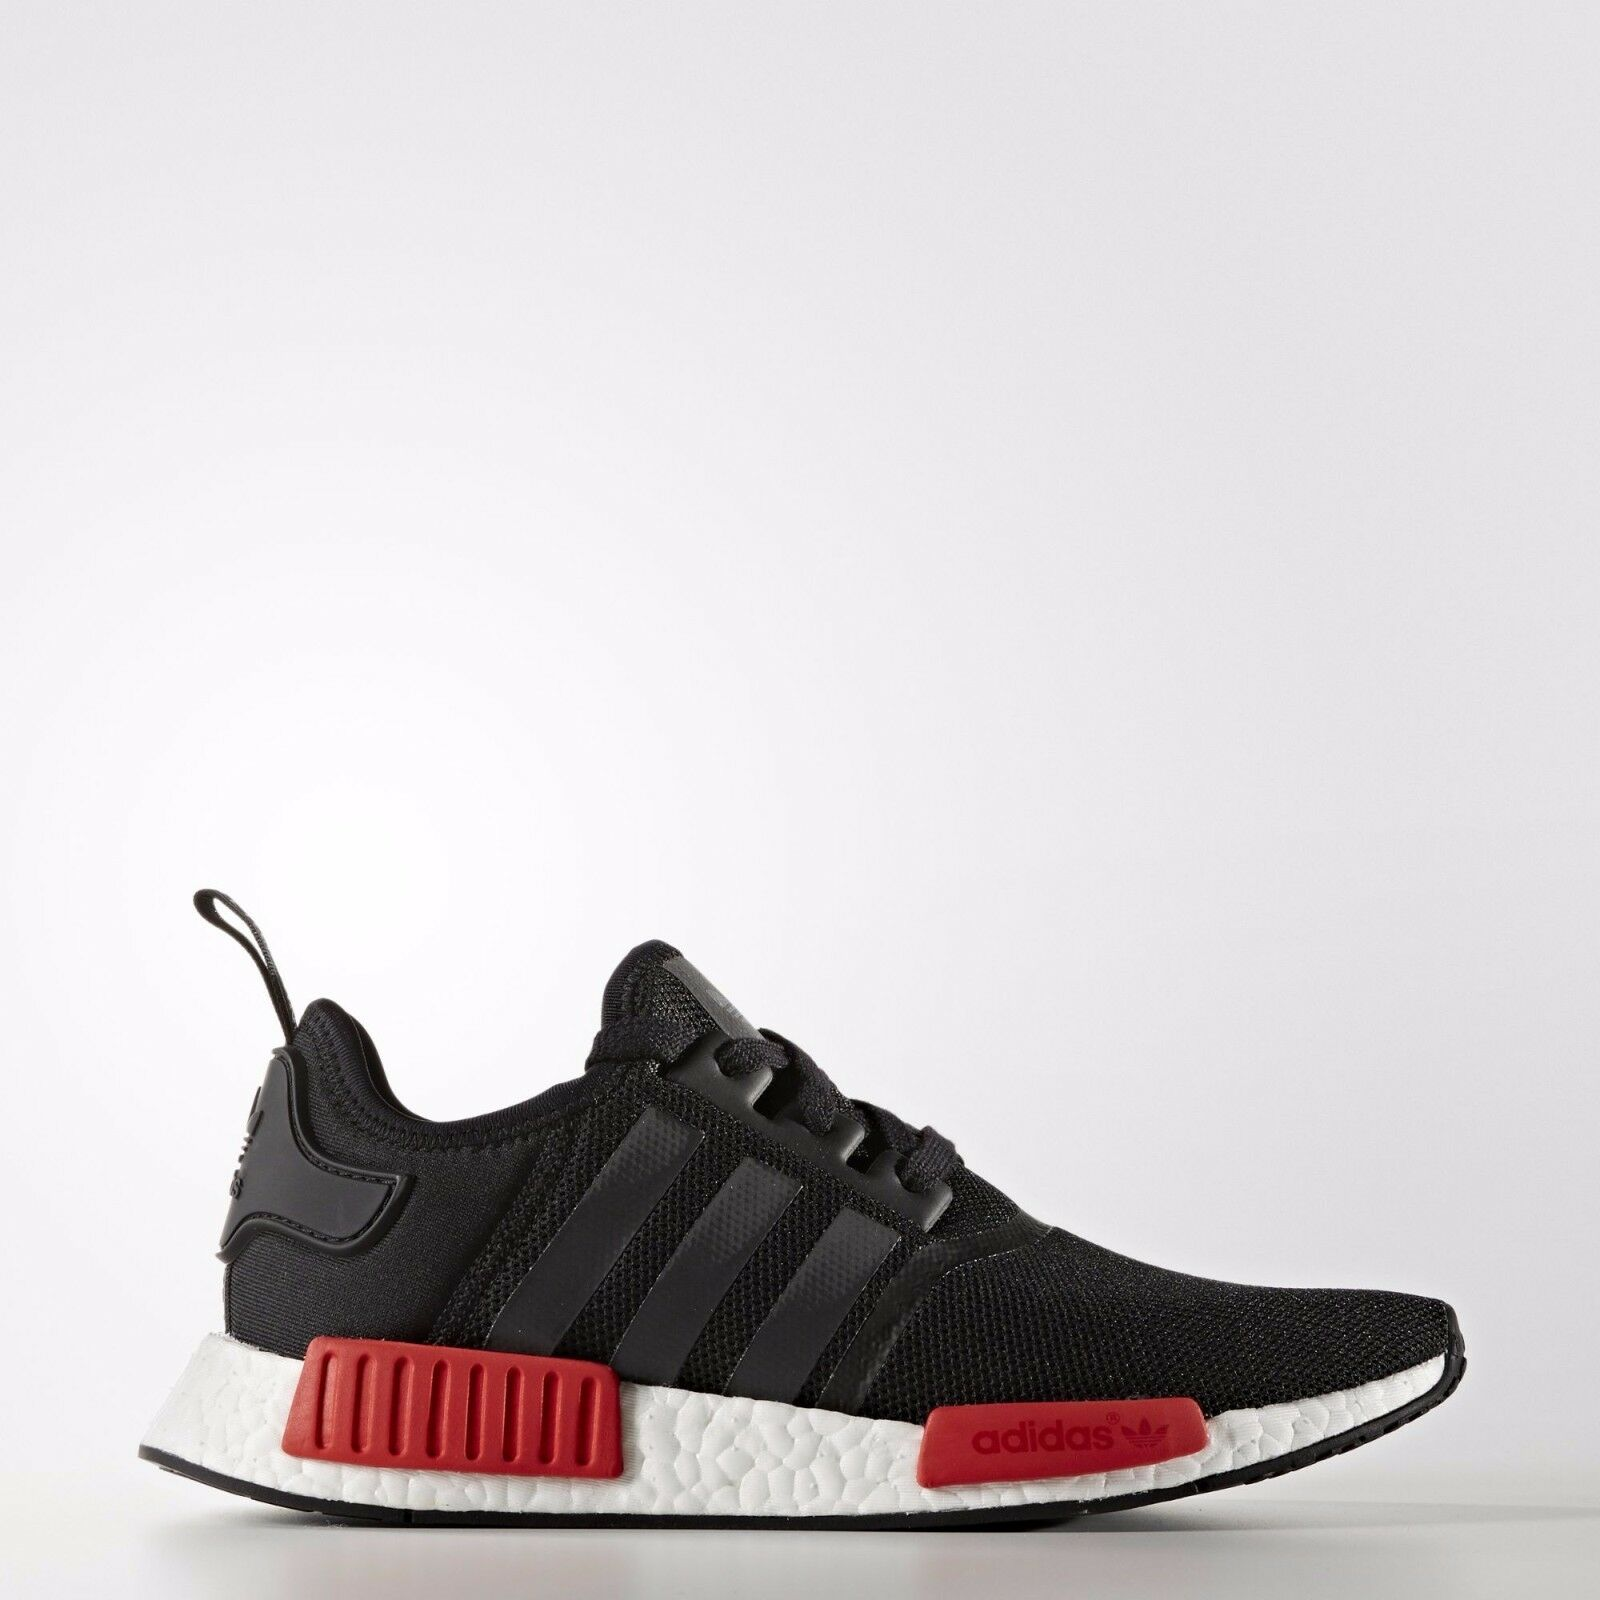 Adidas Nmd R1 Bred Pack